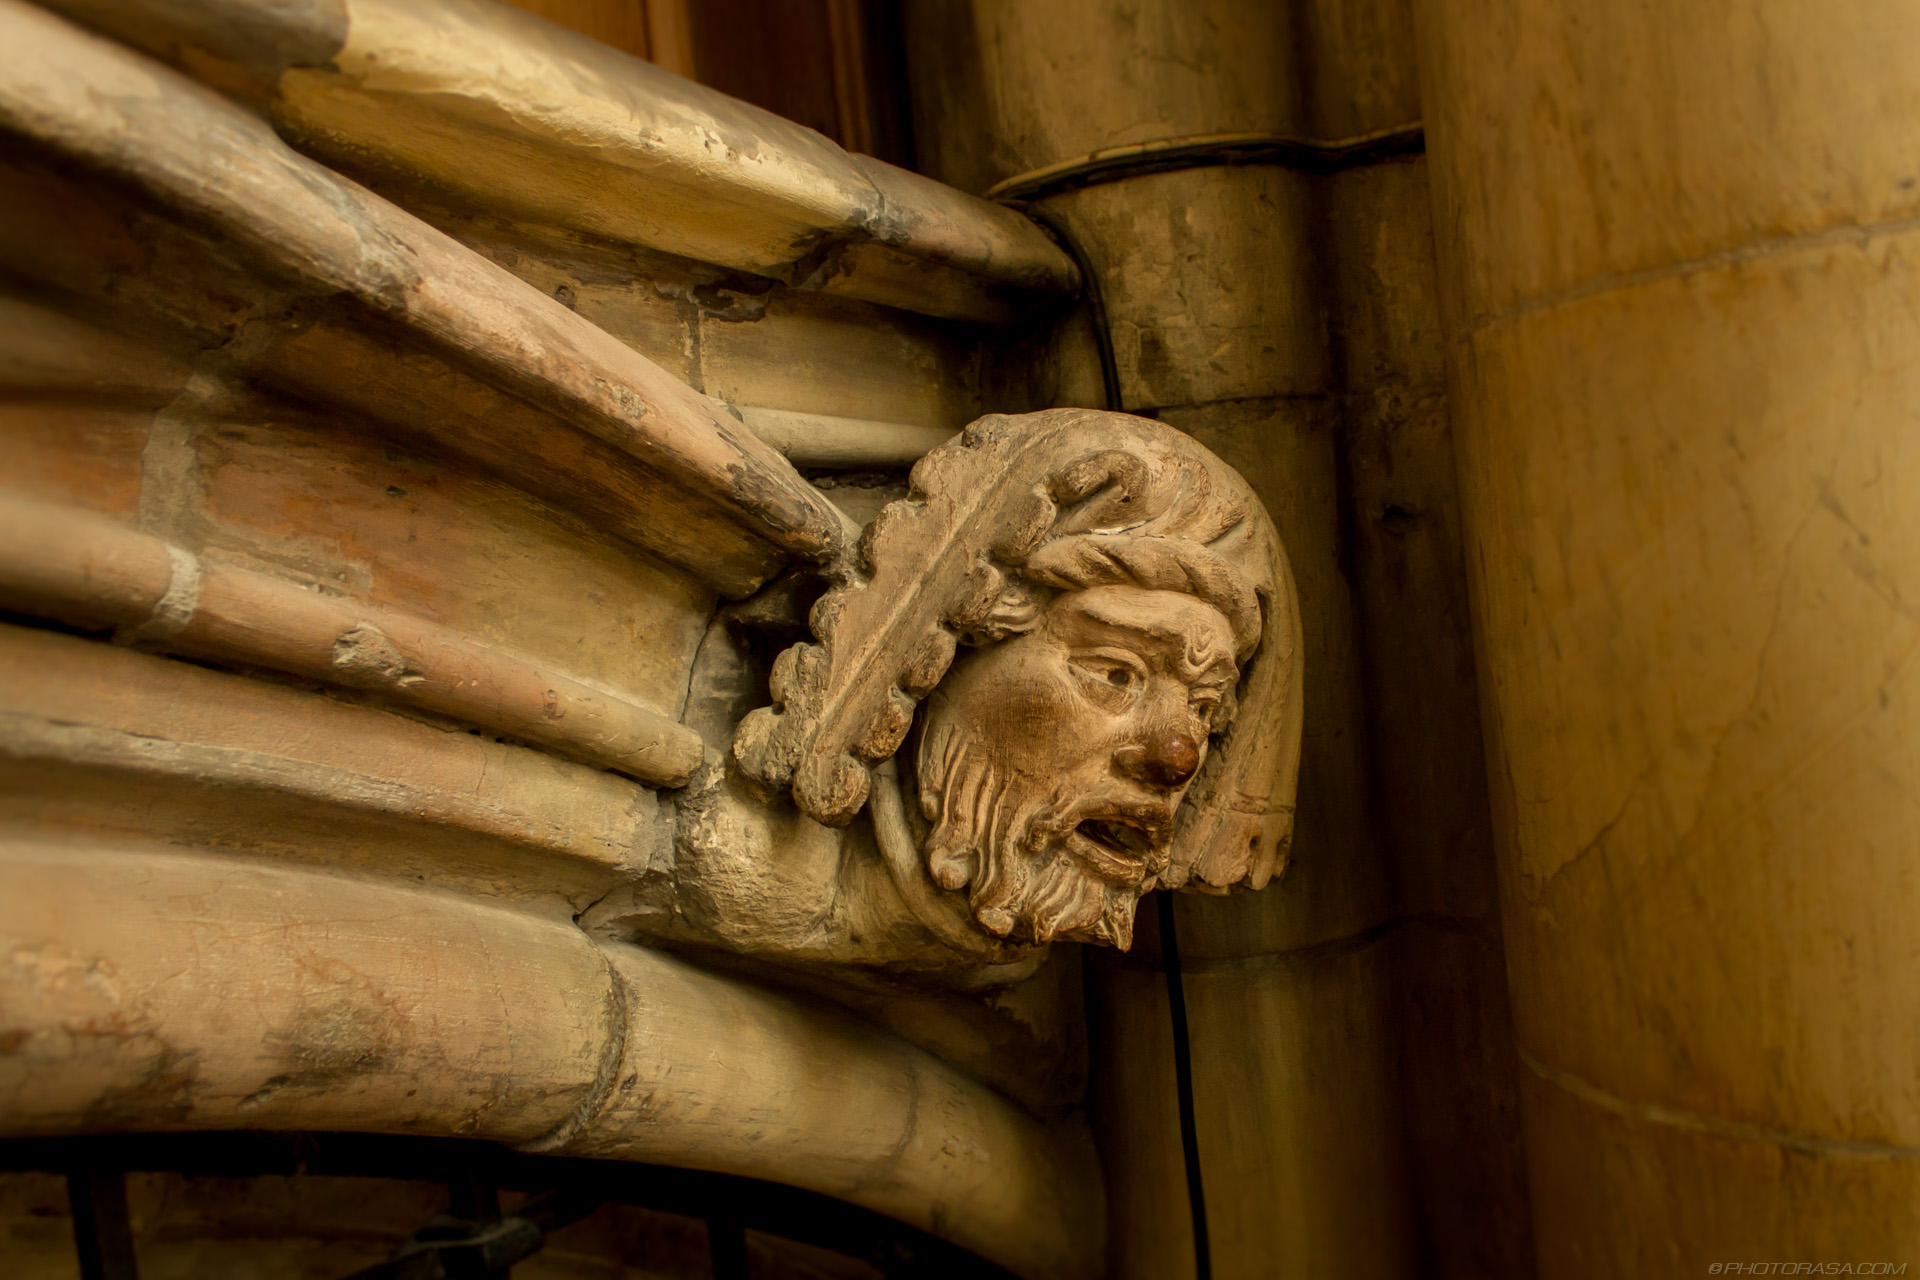 http://photorasa.com/places/yorkminster-cathedral/attachment/gargoyle-man/